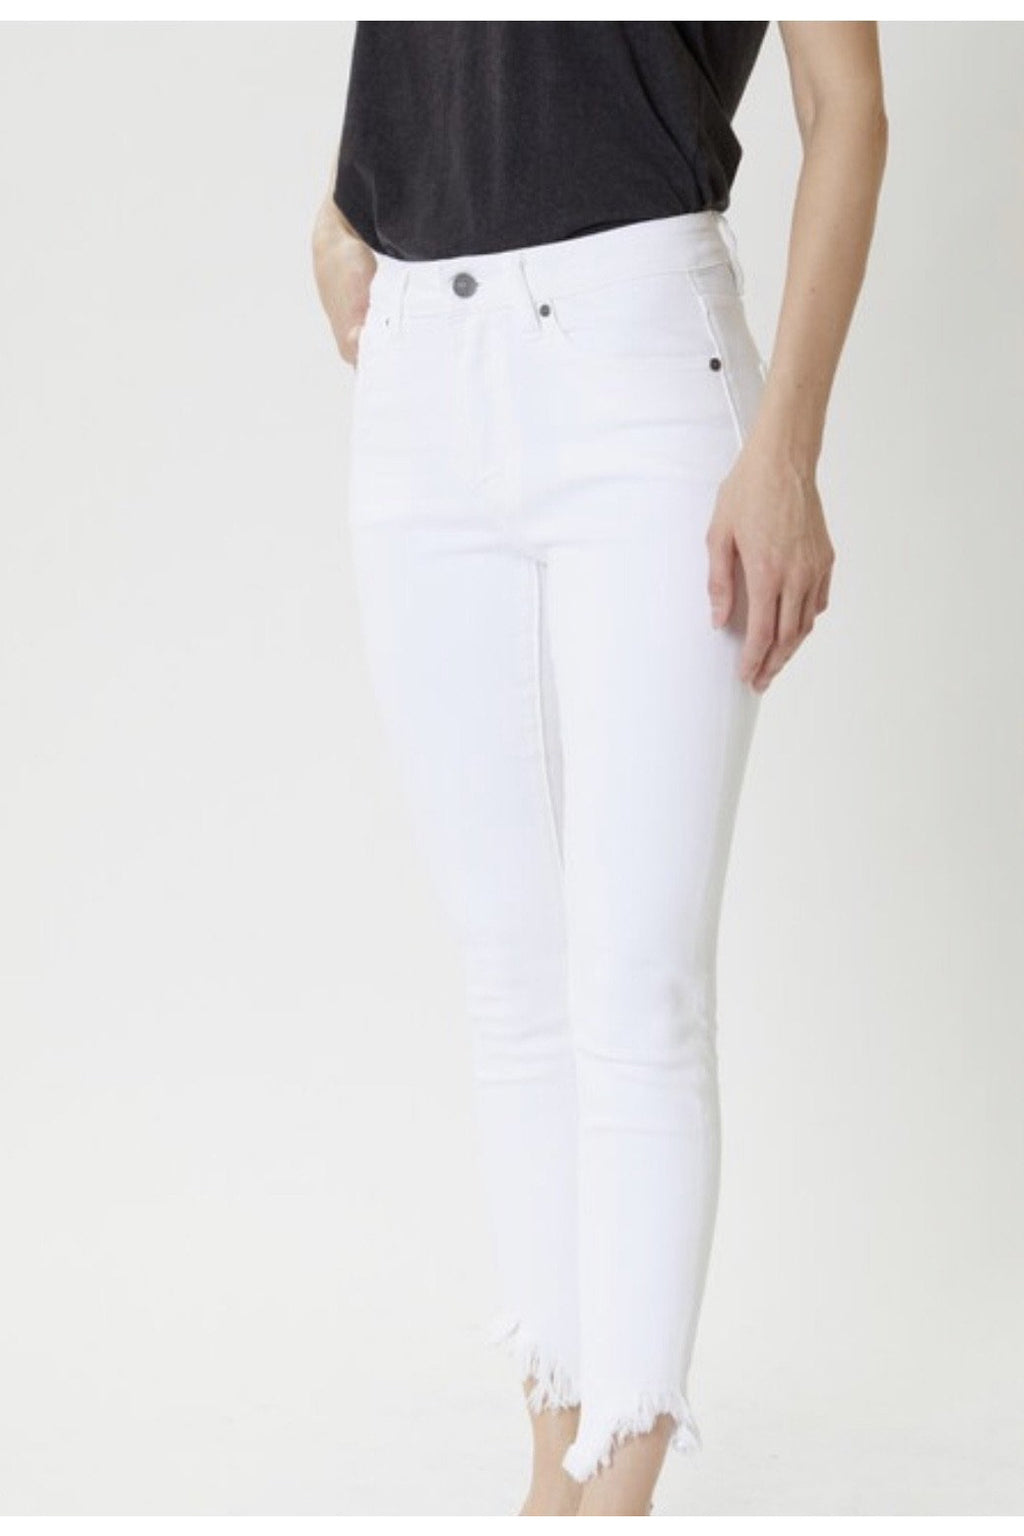 Dixie High Rise Ankle Jeans $52